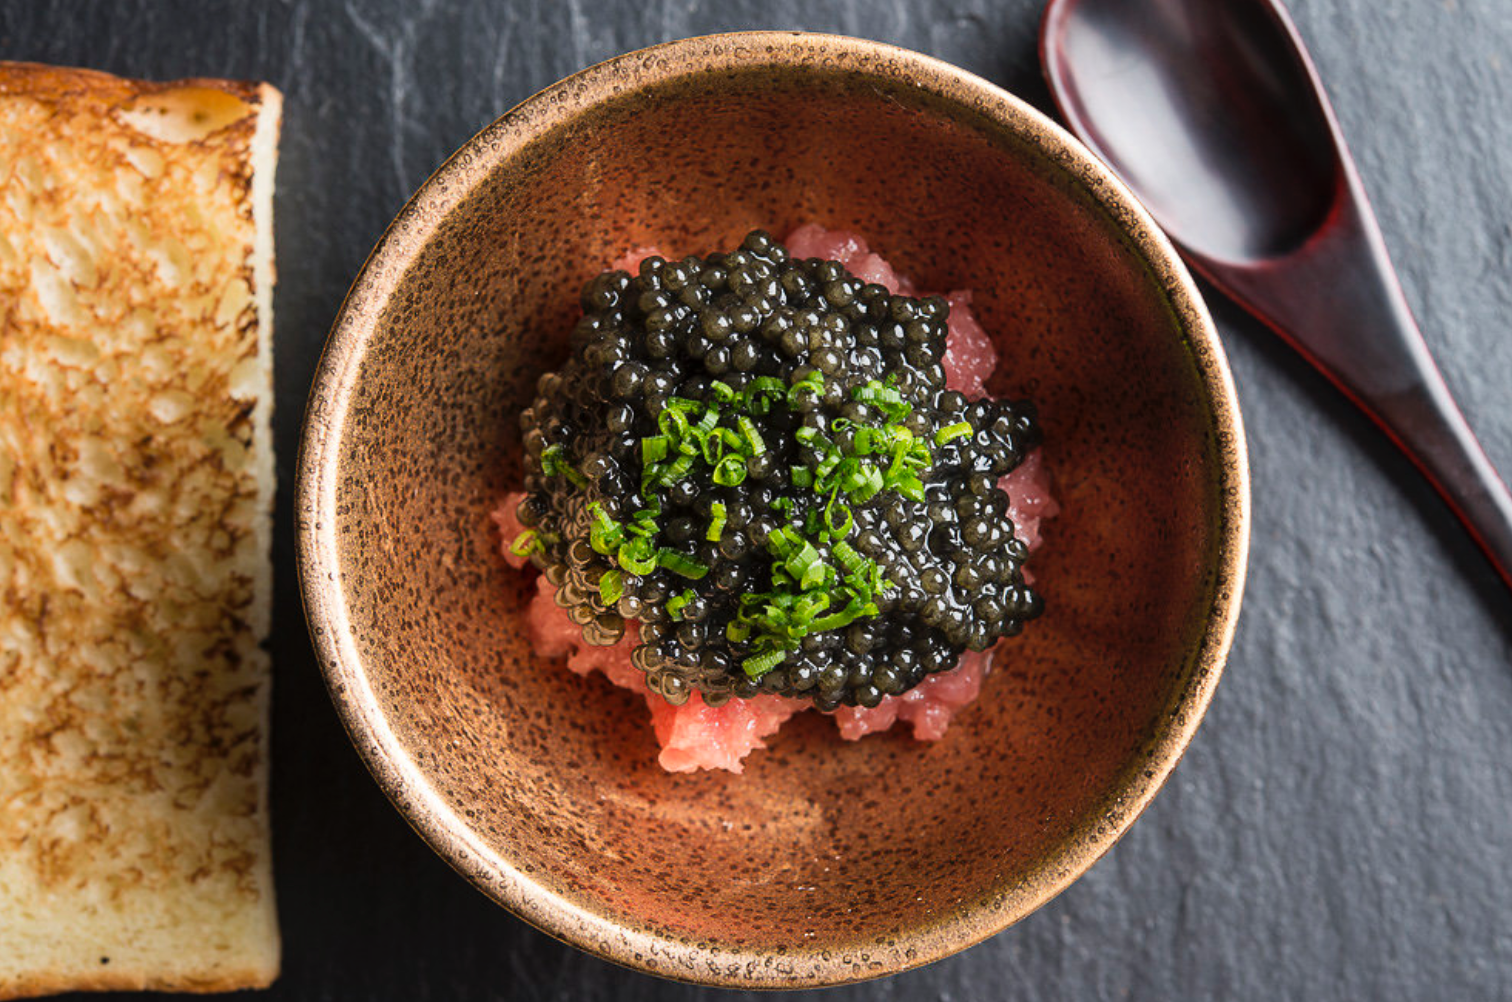 7. Shuko - Compact, omakase-only Japanese choice for upscale sushi or more elaborate kaiseki meals.